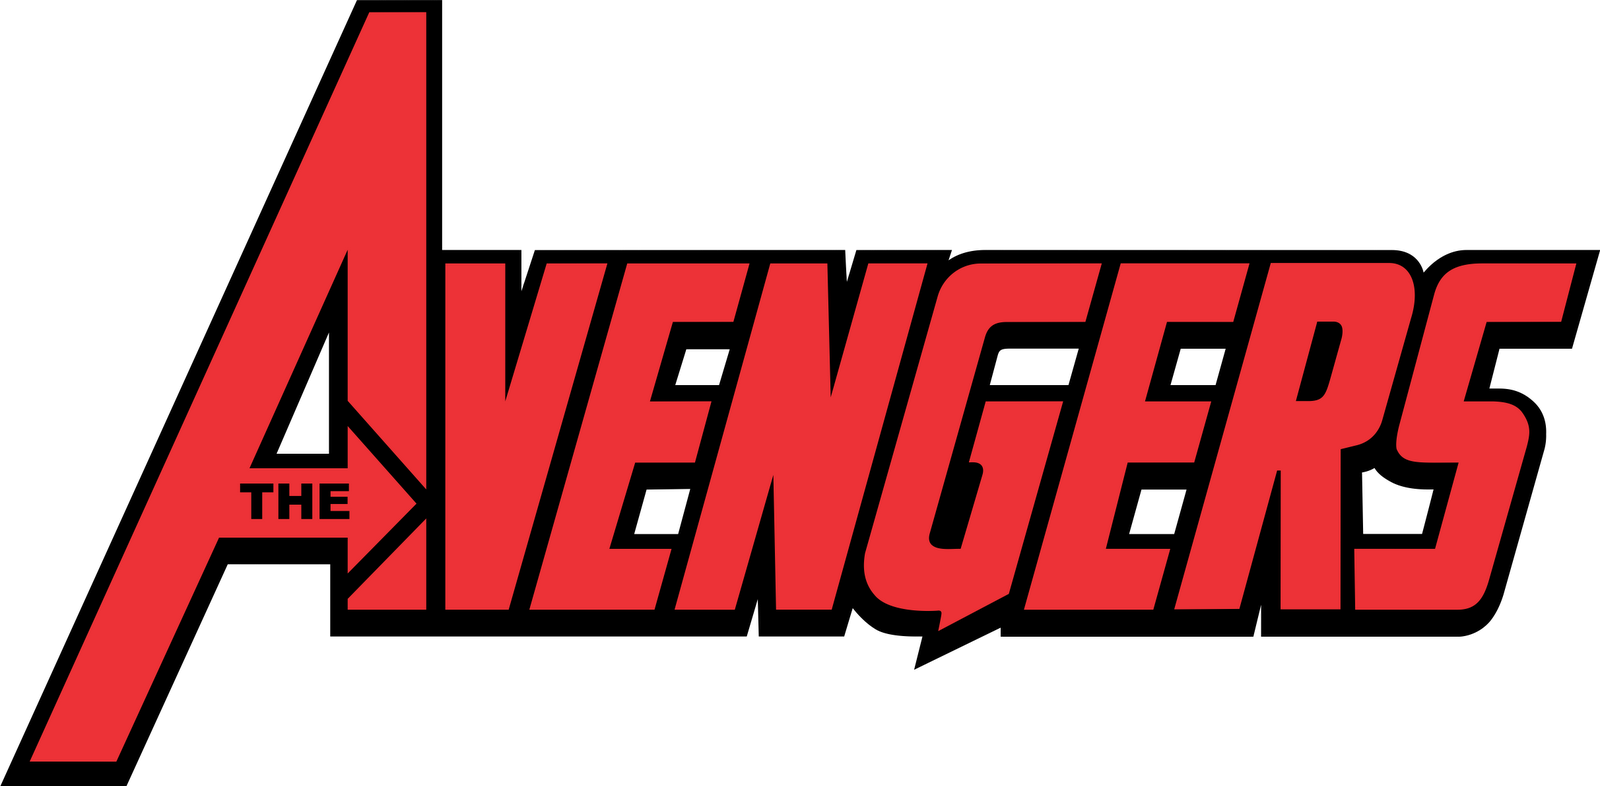 Avengers Logos Pinterest Vector free download and Marvel